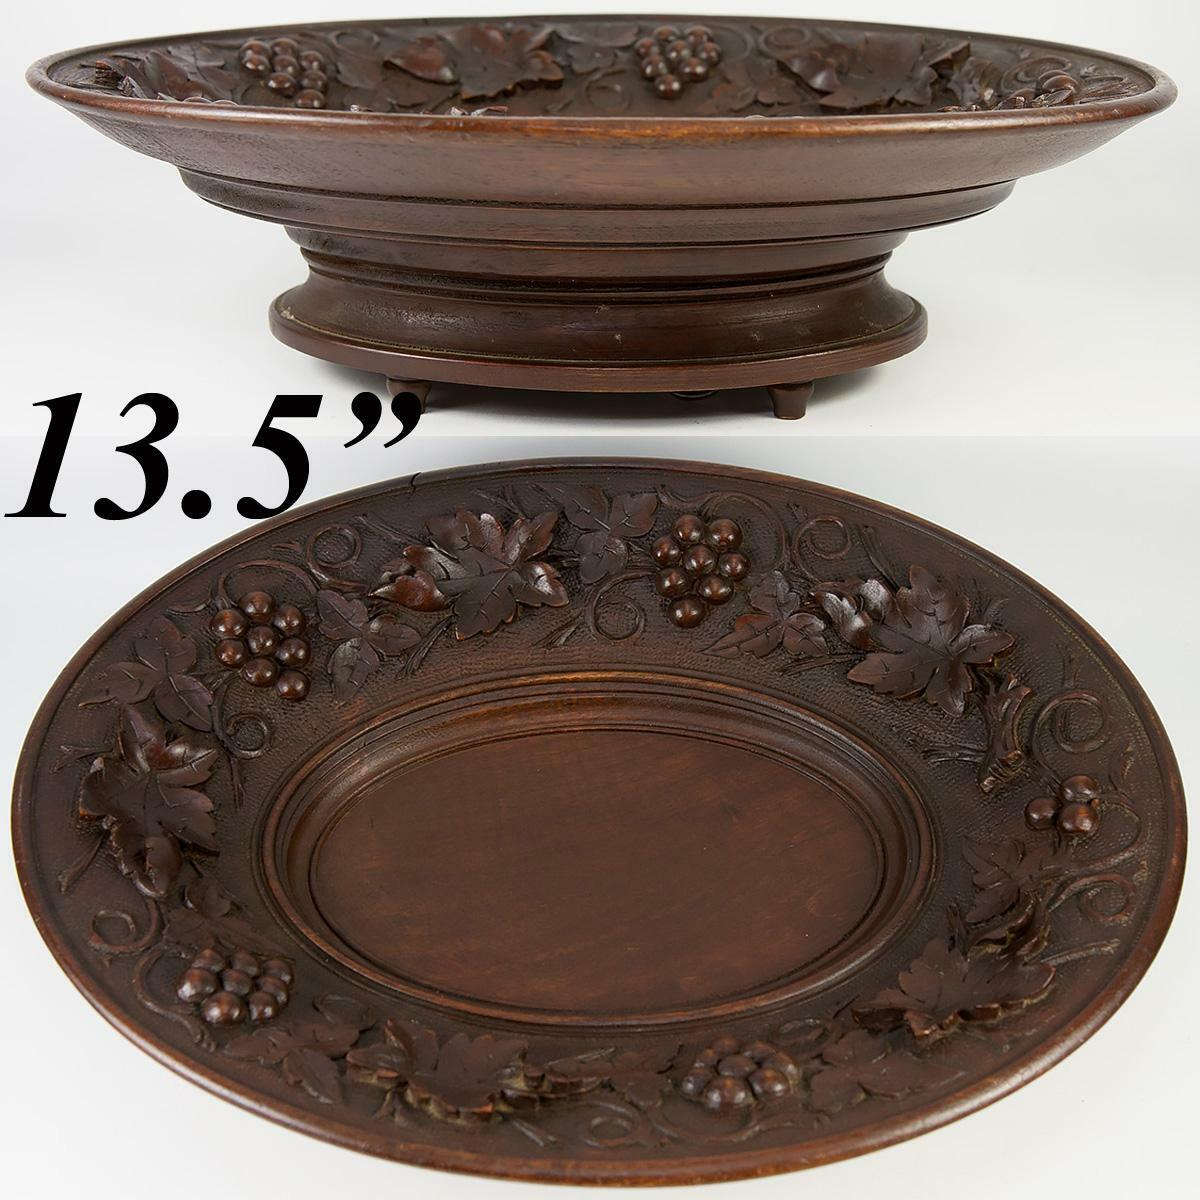 "Antique Black Forest 13.5"" x 10.5"" Oval Raised Centerpiece, Fruit Tray Music Box"